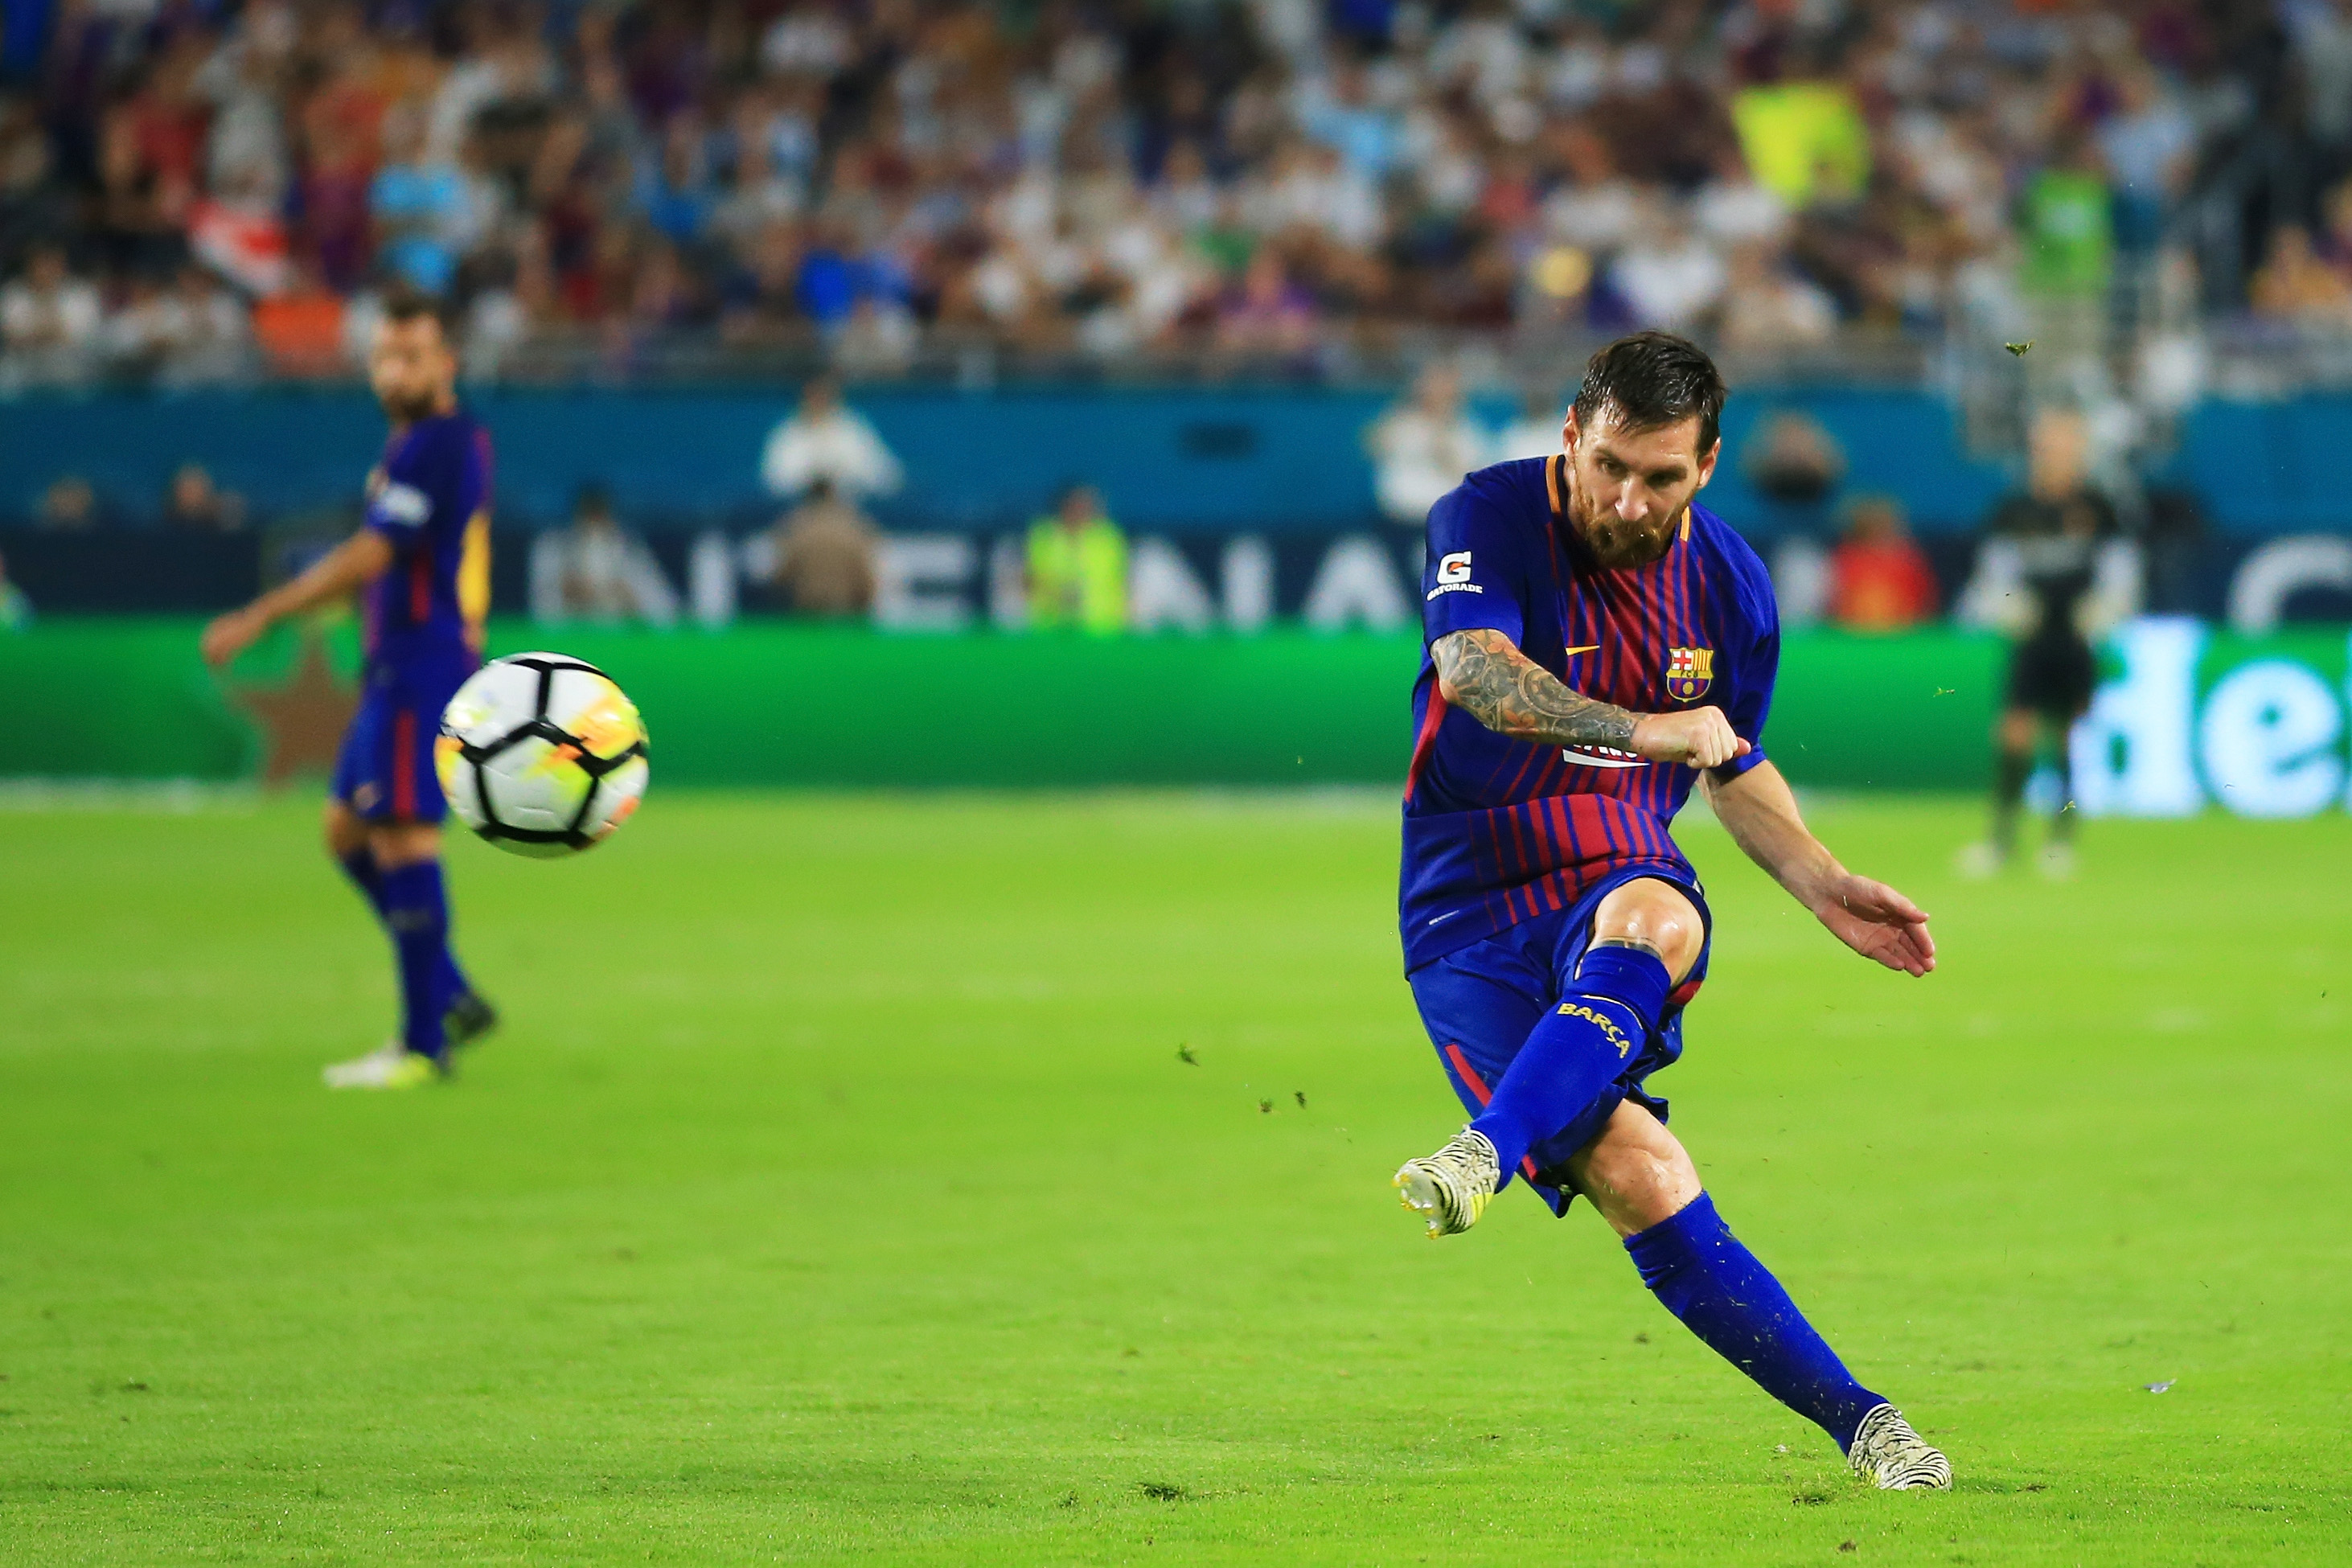 Leo Messi is the best player in LaLiga history